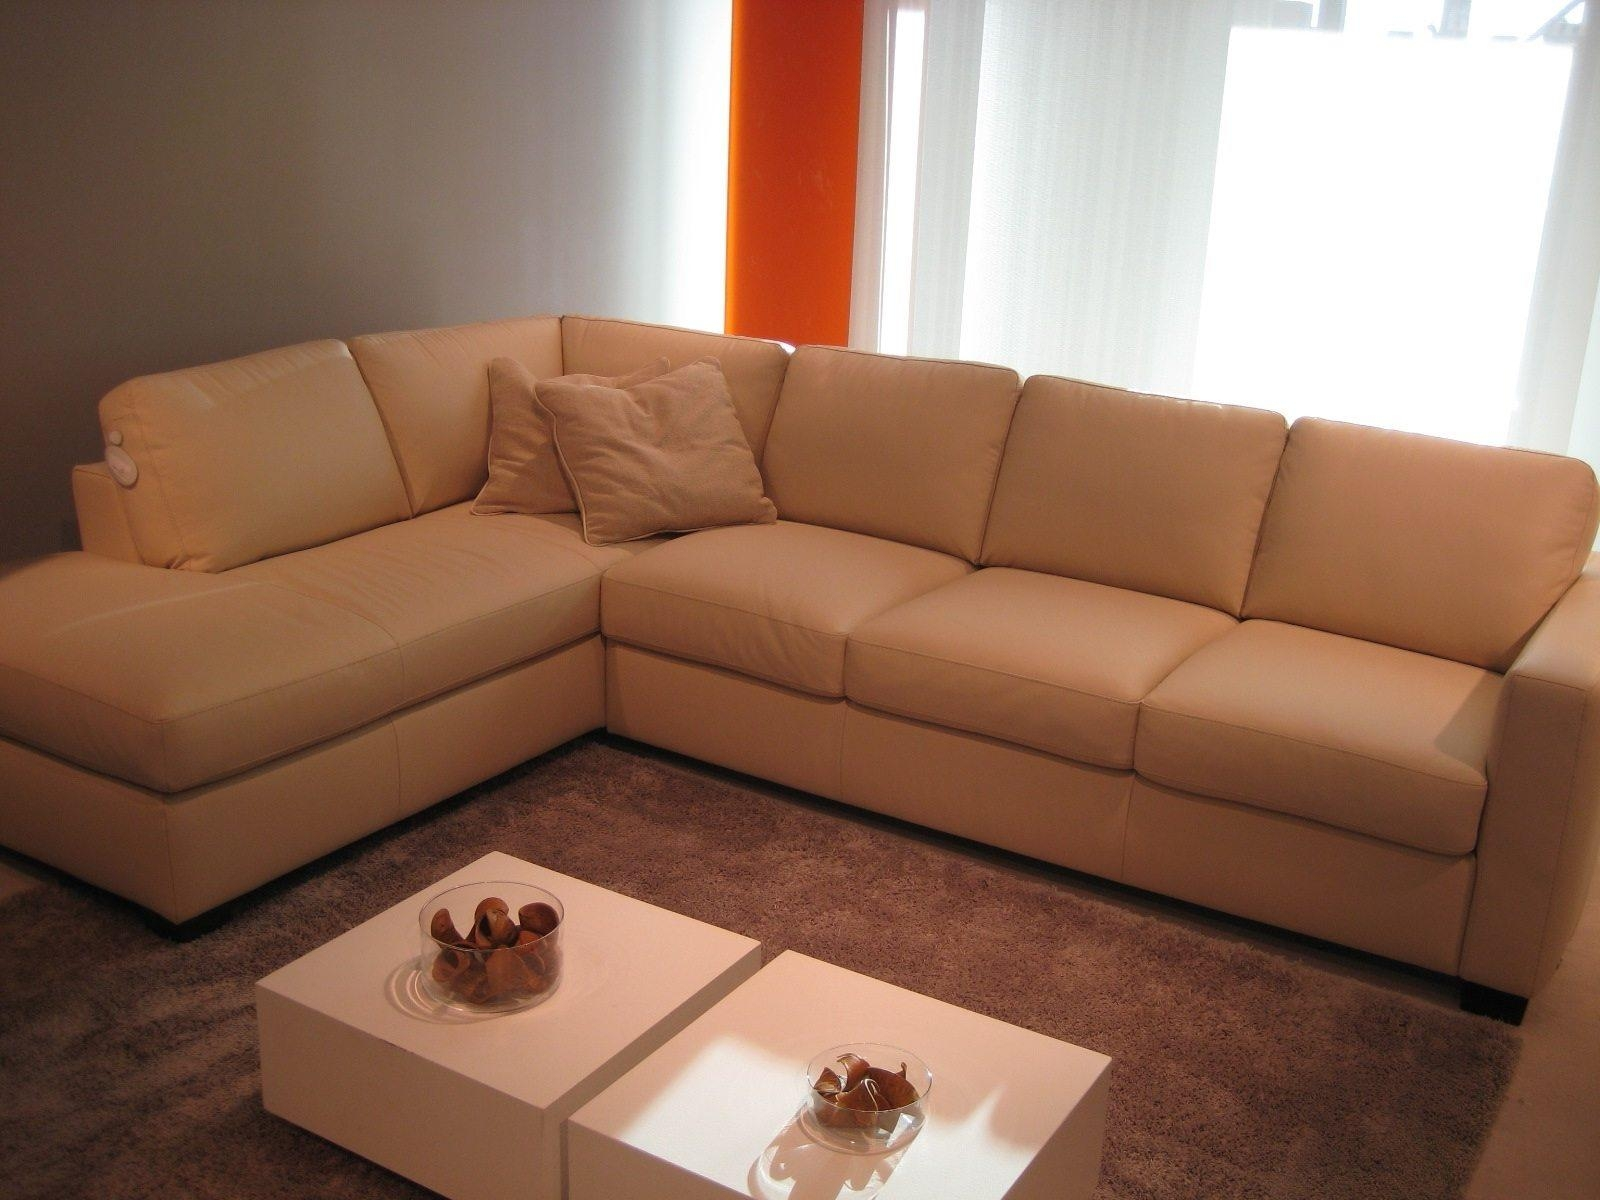 Download Winsome Inspiration Camel Color Leather Sofa Throughout Camel Color Leather Sofas (View 17 of 20)